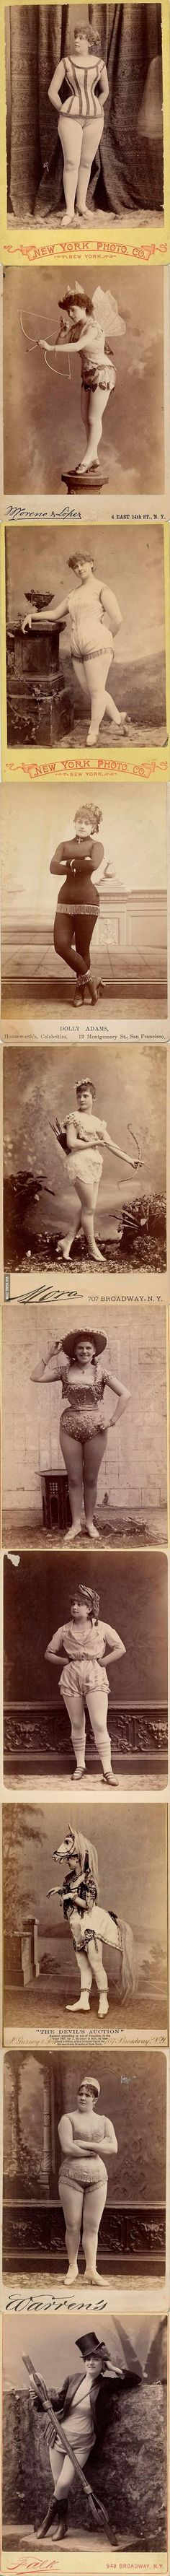 Exotic Dancers from the 1890s